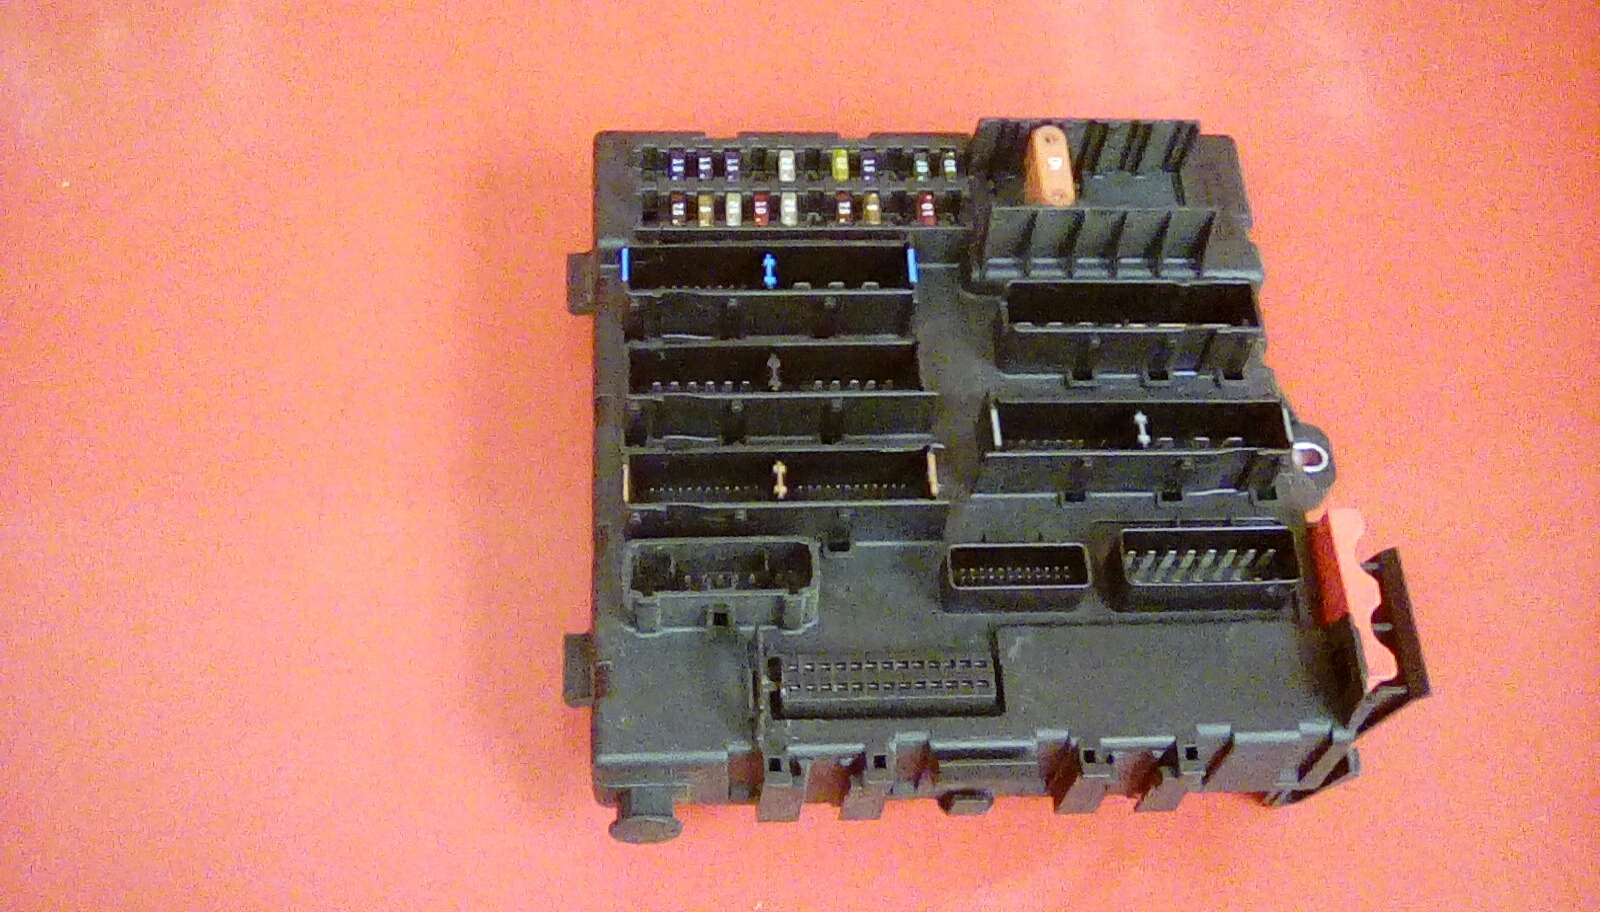 Rear Fuse Box Vectra C : Vauxhall vectra c rec rear electrical control module fuse